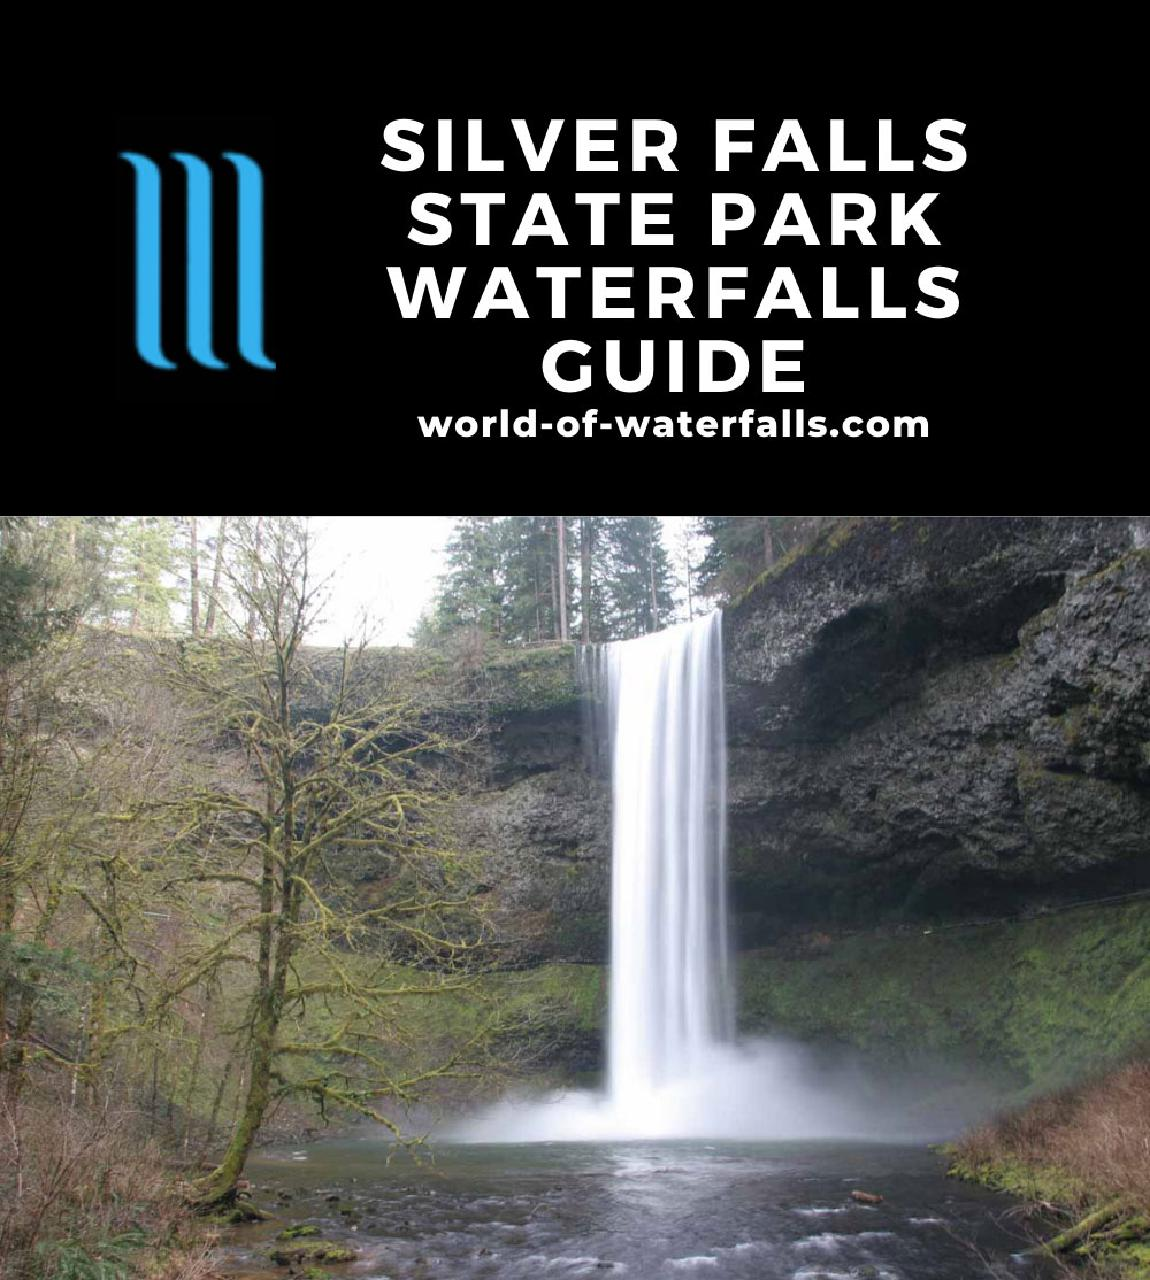 Silver Falls State Park Waterfalls Guide